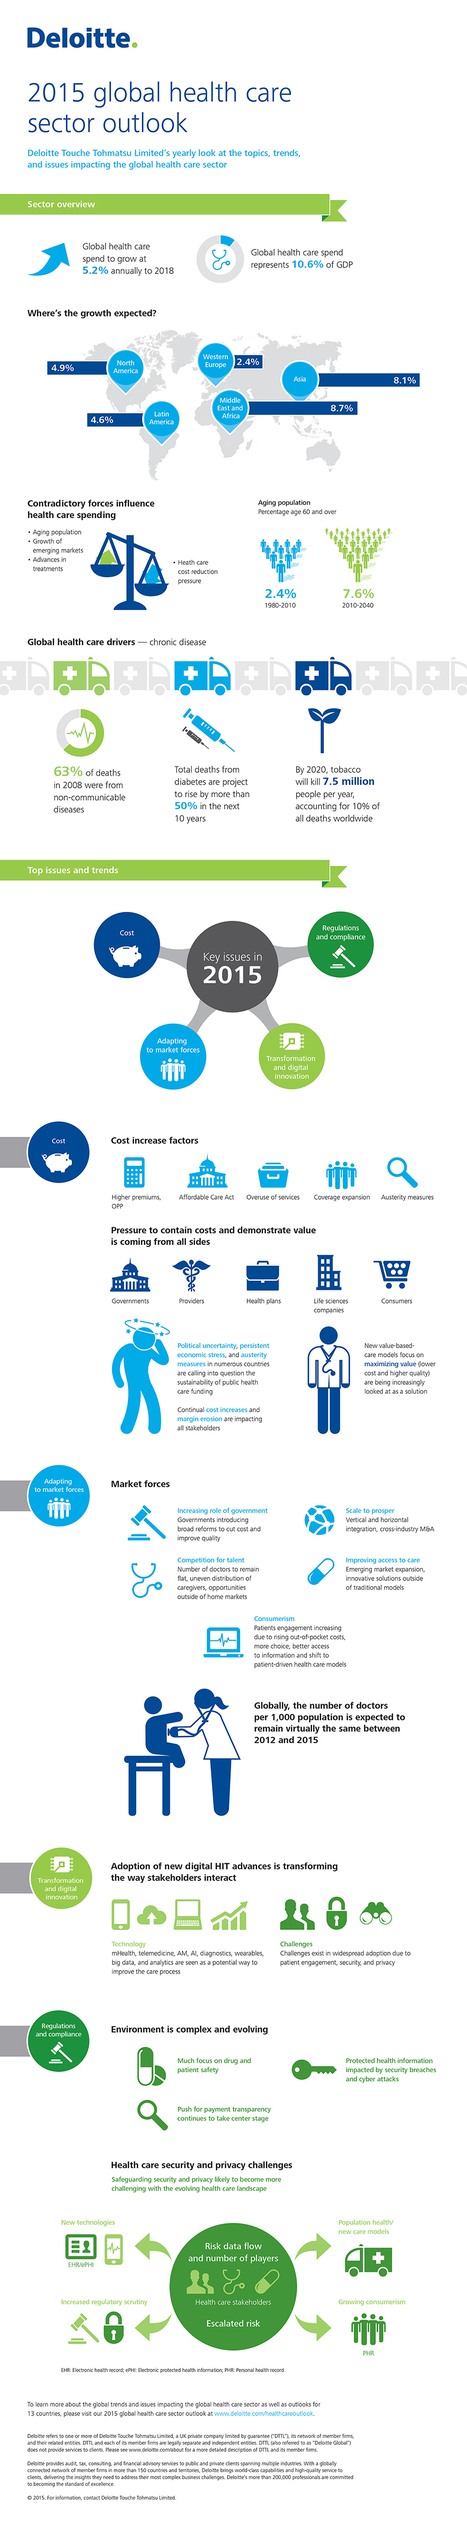 Infographic: 2015 global health care sector outlook - A view from the Center | Deloitte Center for Health Solutions Blog | Digital communication & advancements | Scoop.it